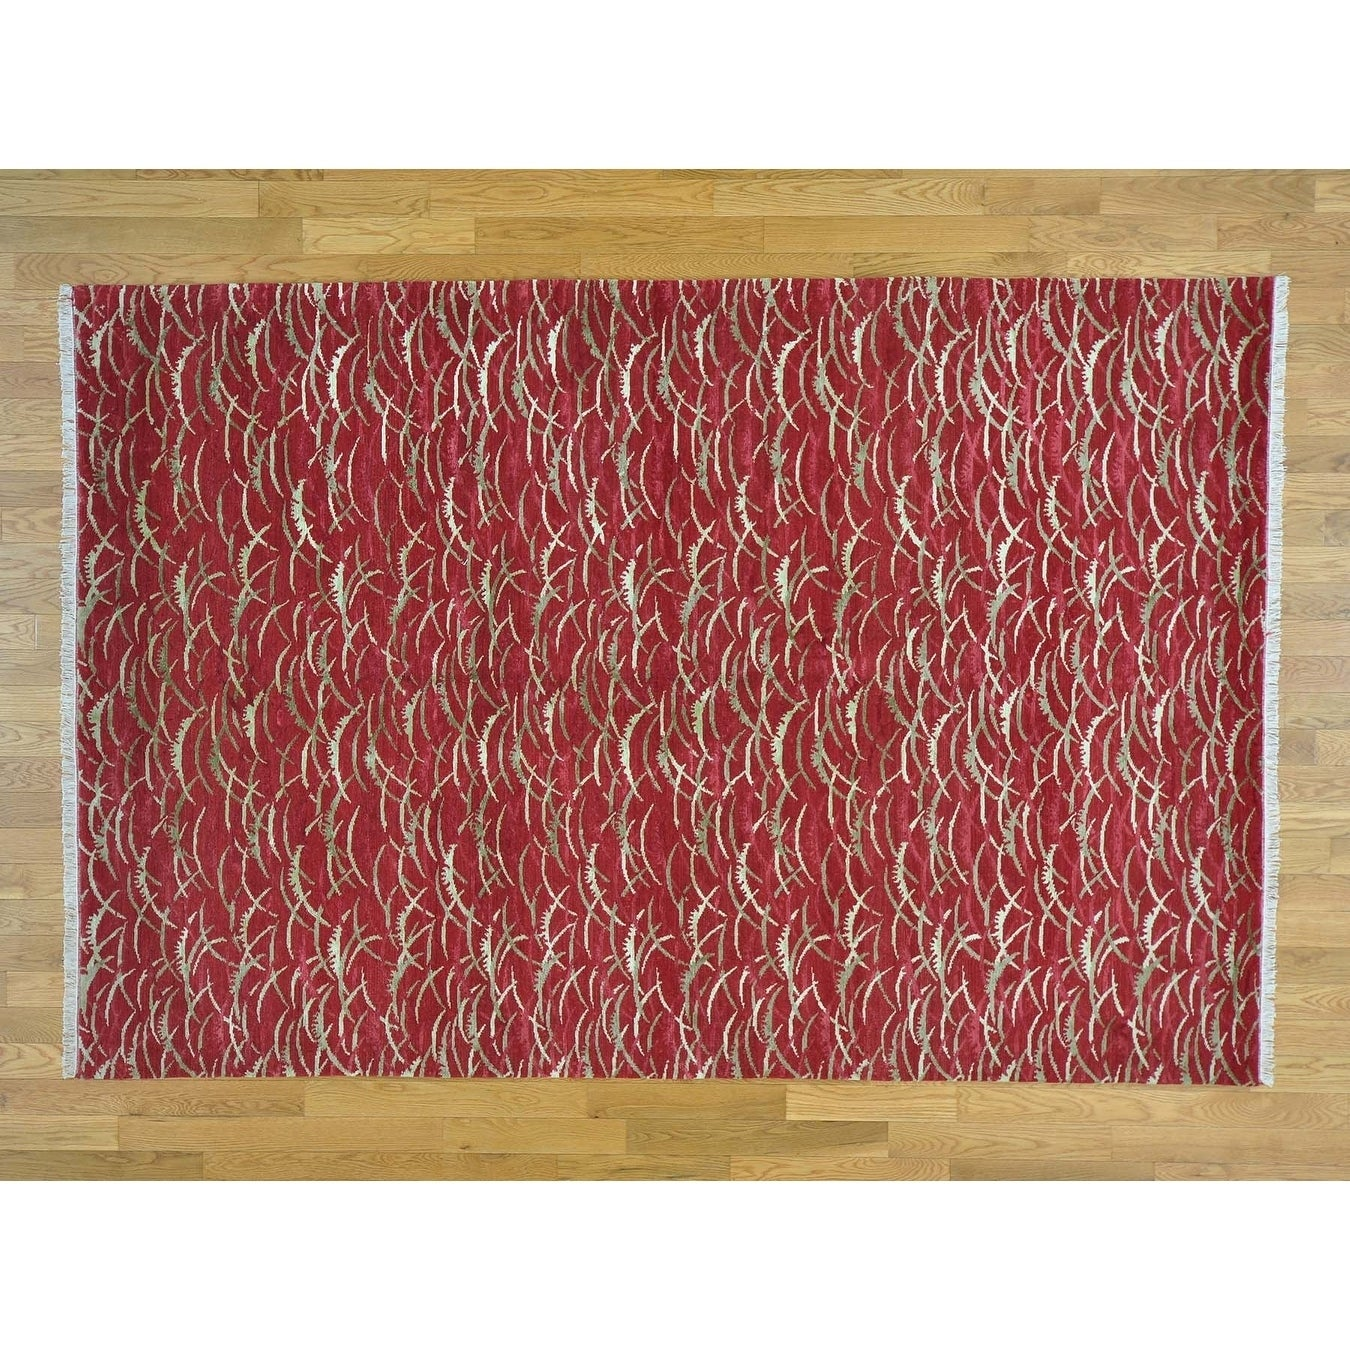 Hand Knotted Red Clearance with Wool & Silk Oriental Rug - 6 x 9